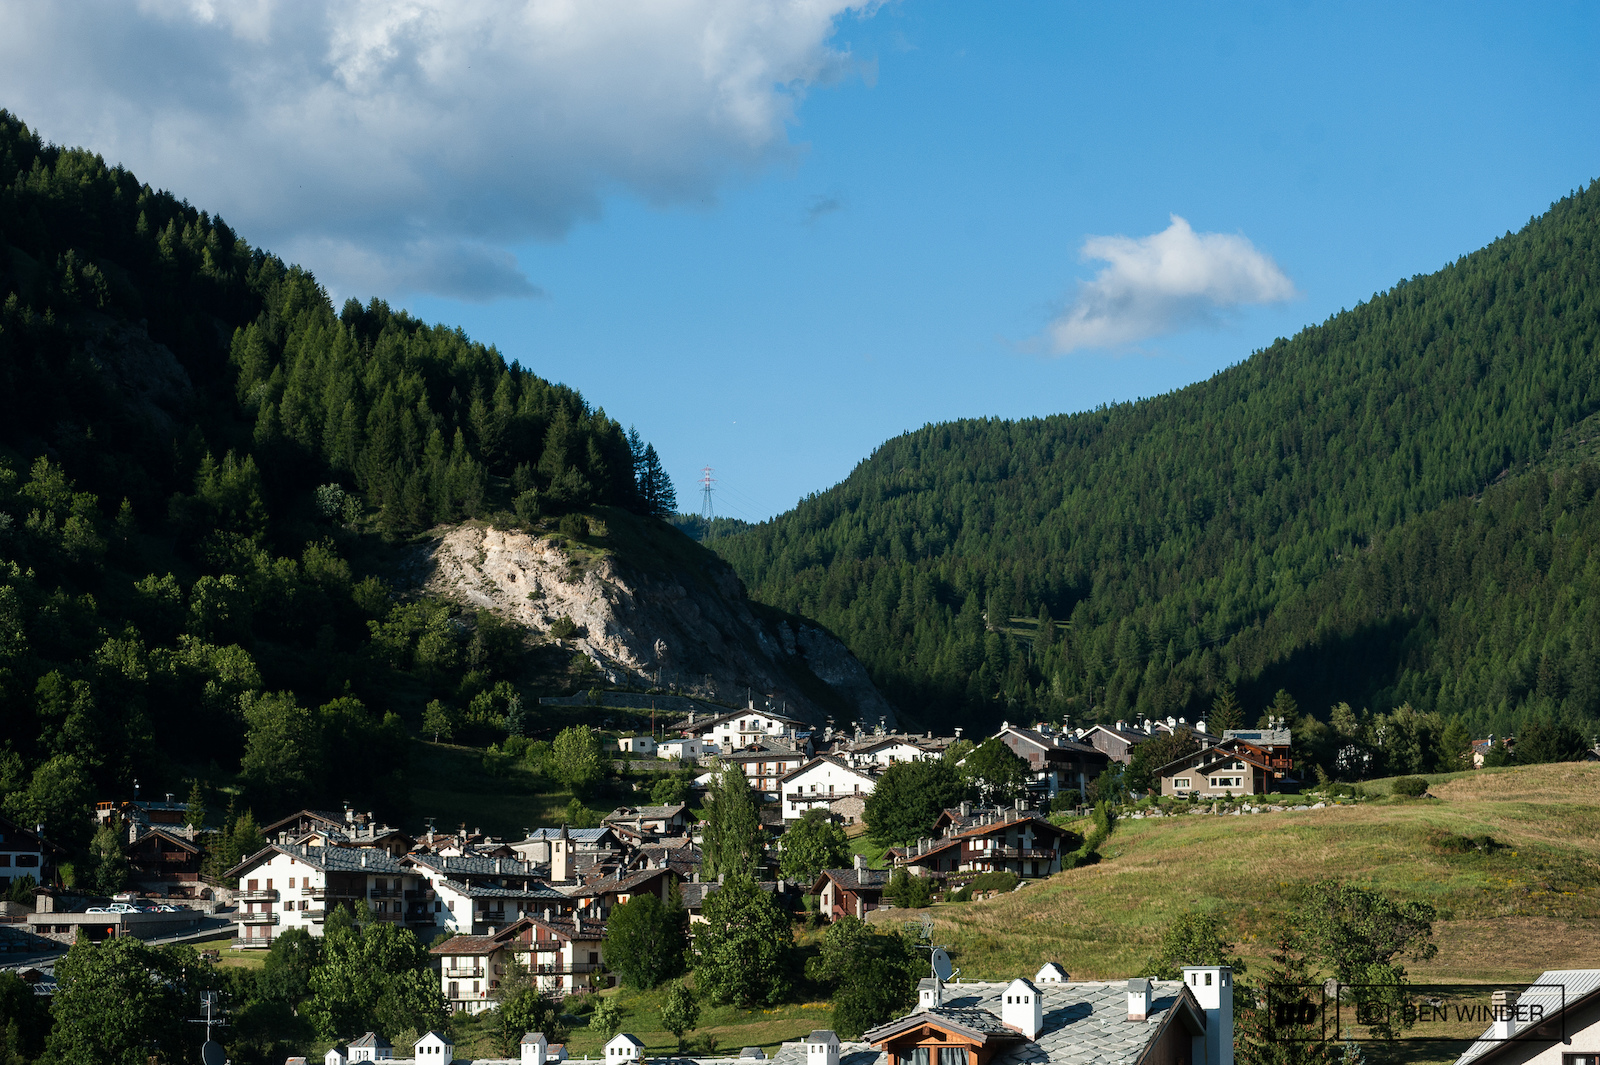 La Thuile is quite the picturesque Alpine town.